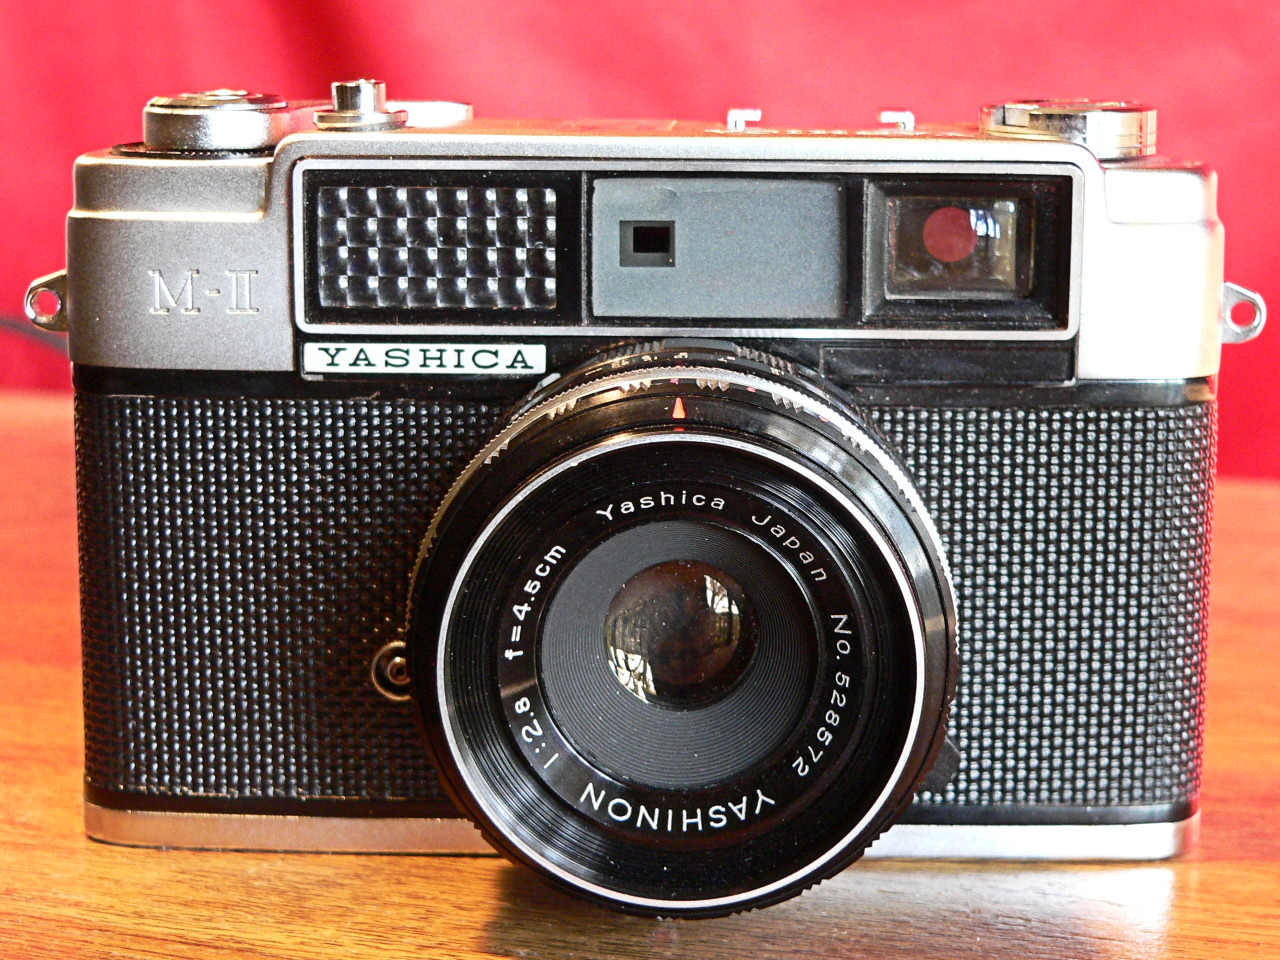 Yashica MII [AKA Minster 2] 35mm Rangefinder Front View (1962)